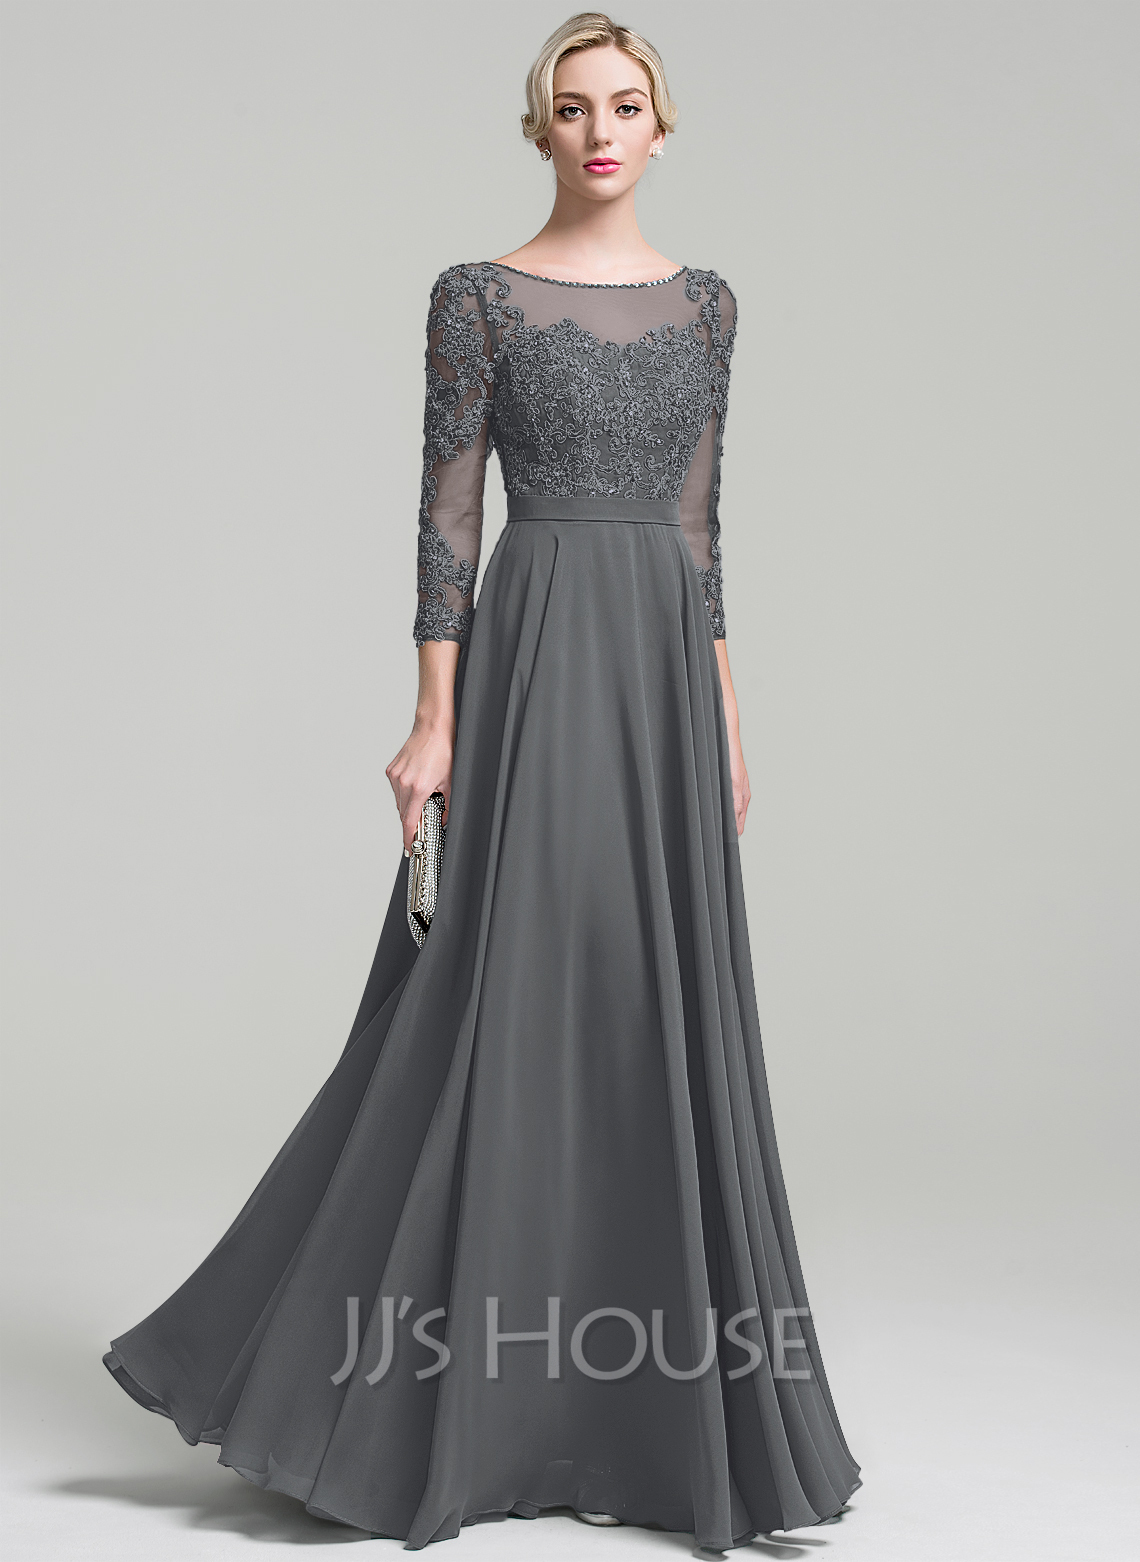 e284526b71 A-Line/Princess Scoop Neck Floor-Length Chiffon Evening Dress With Beading  Sequins. Loading zoom